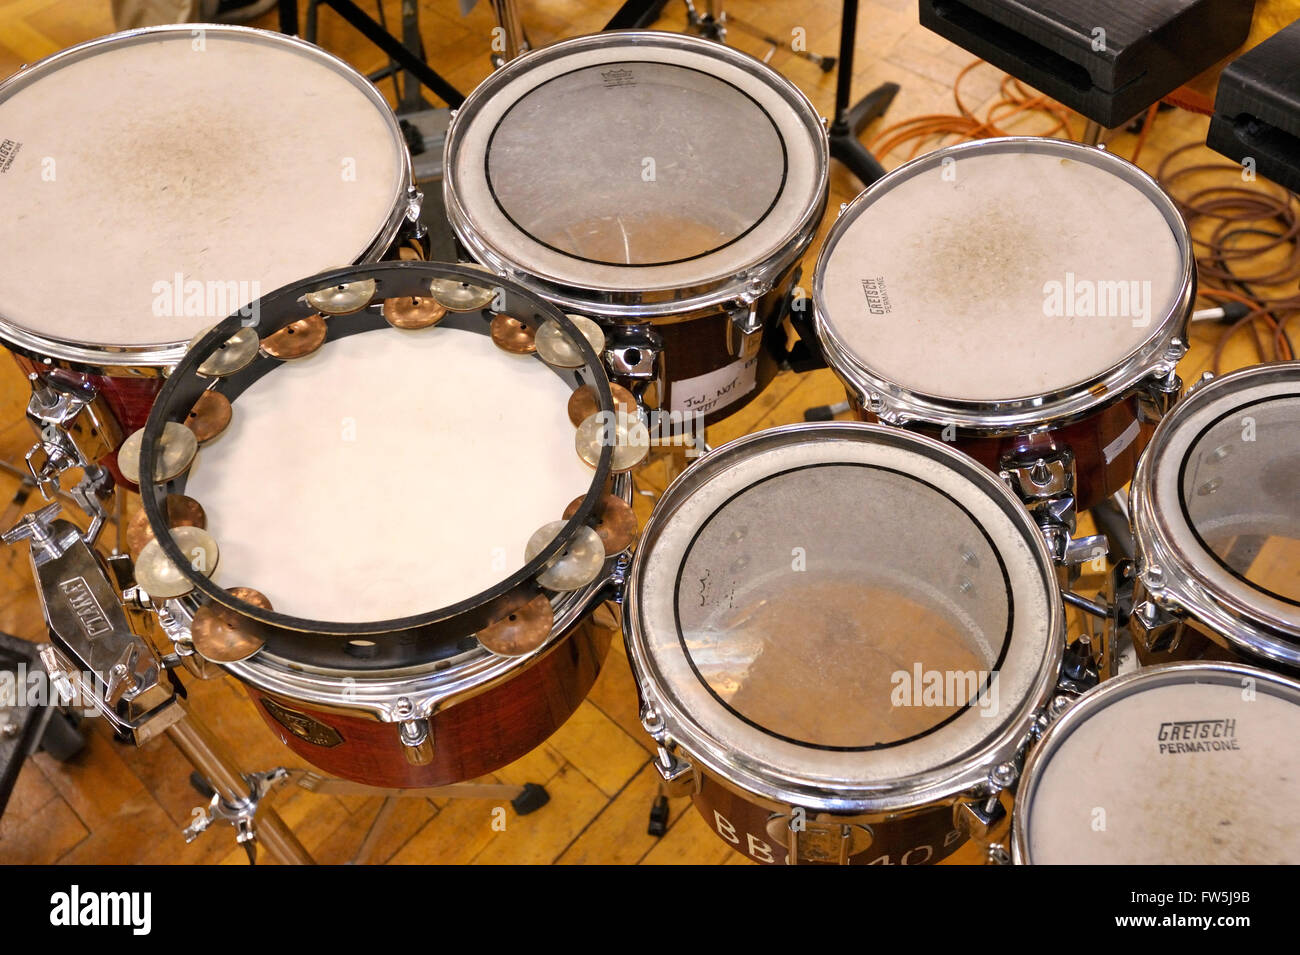 7 tom-toms, small hand-drums originating in Latin American music, used here in the modern symphony orchestra by - Stock Image